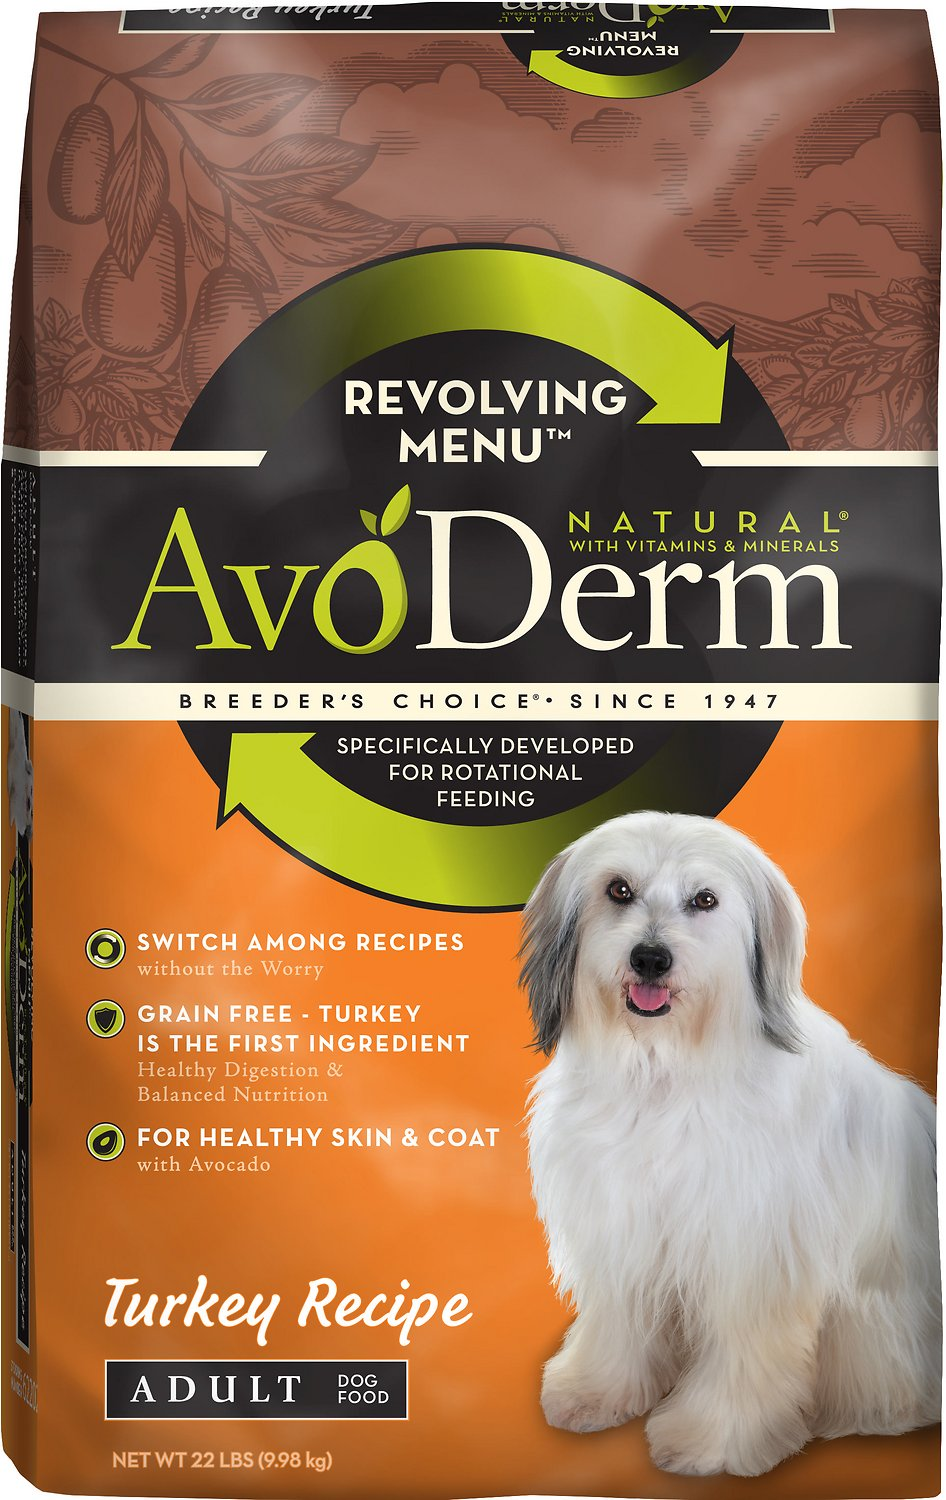 Avoderm Duck Dog Food Reviews